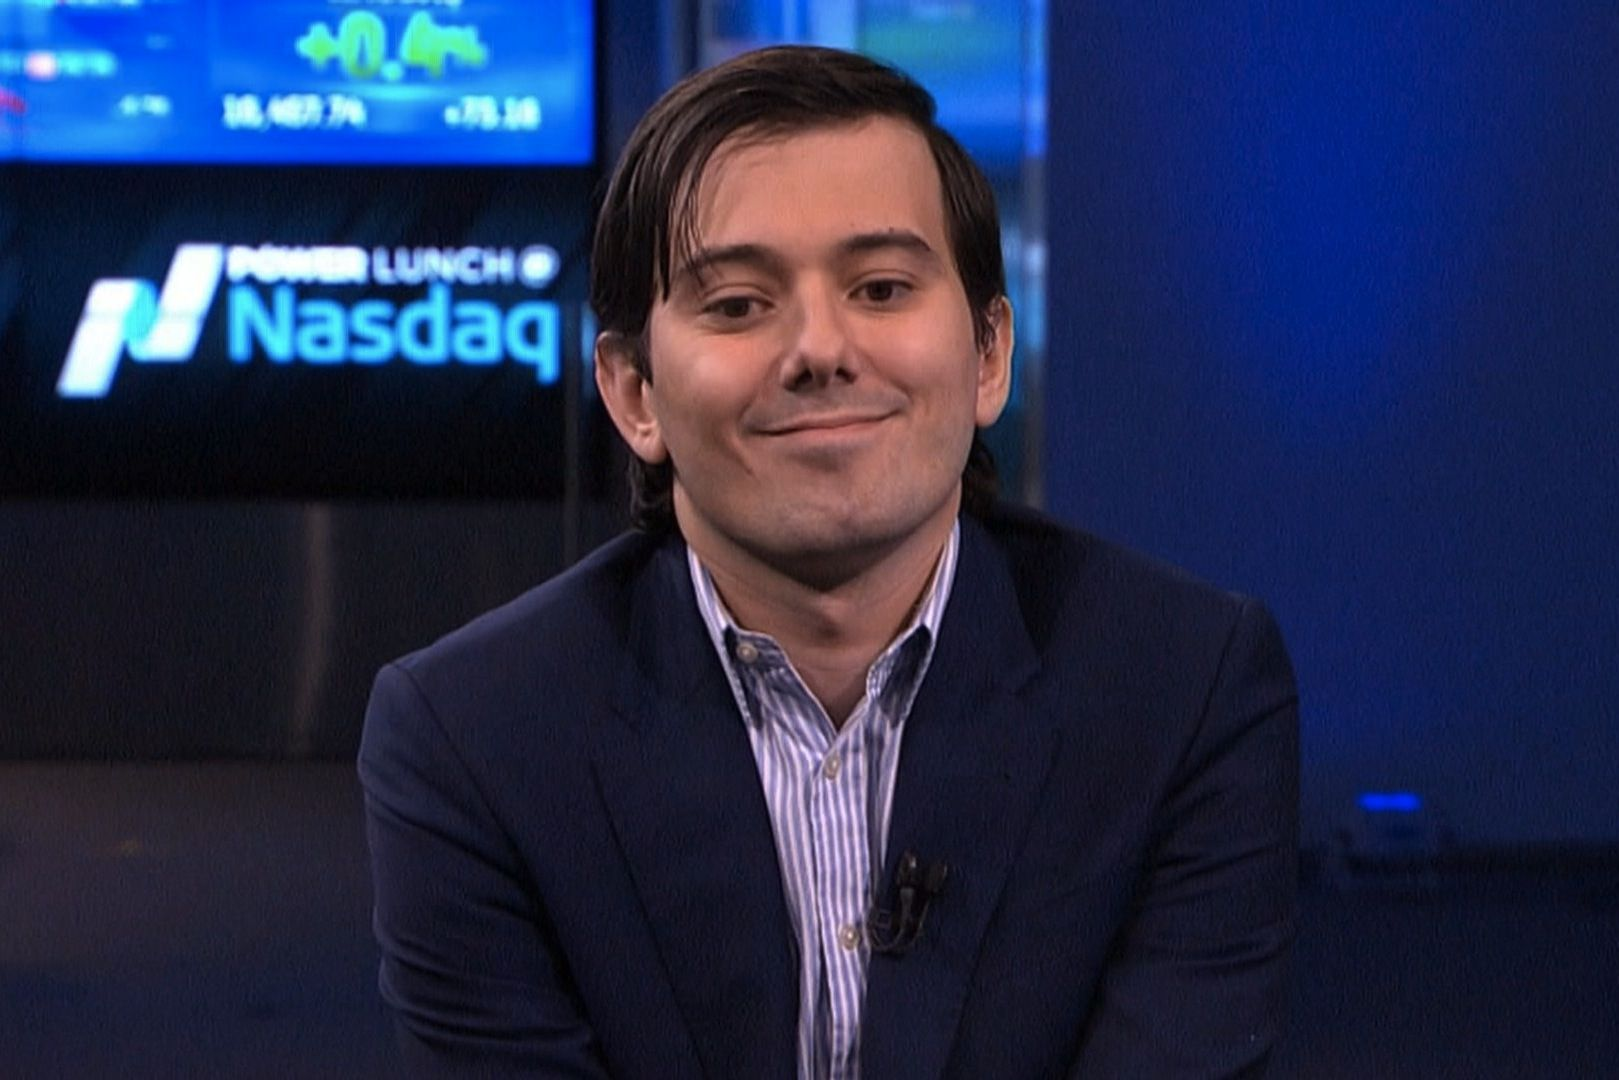 Martin Shkreli Sentenced To 7 Years For Securities Fraud